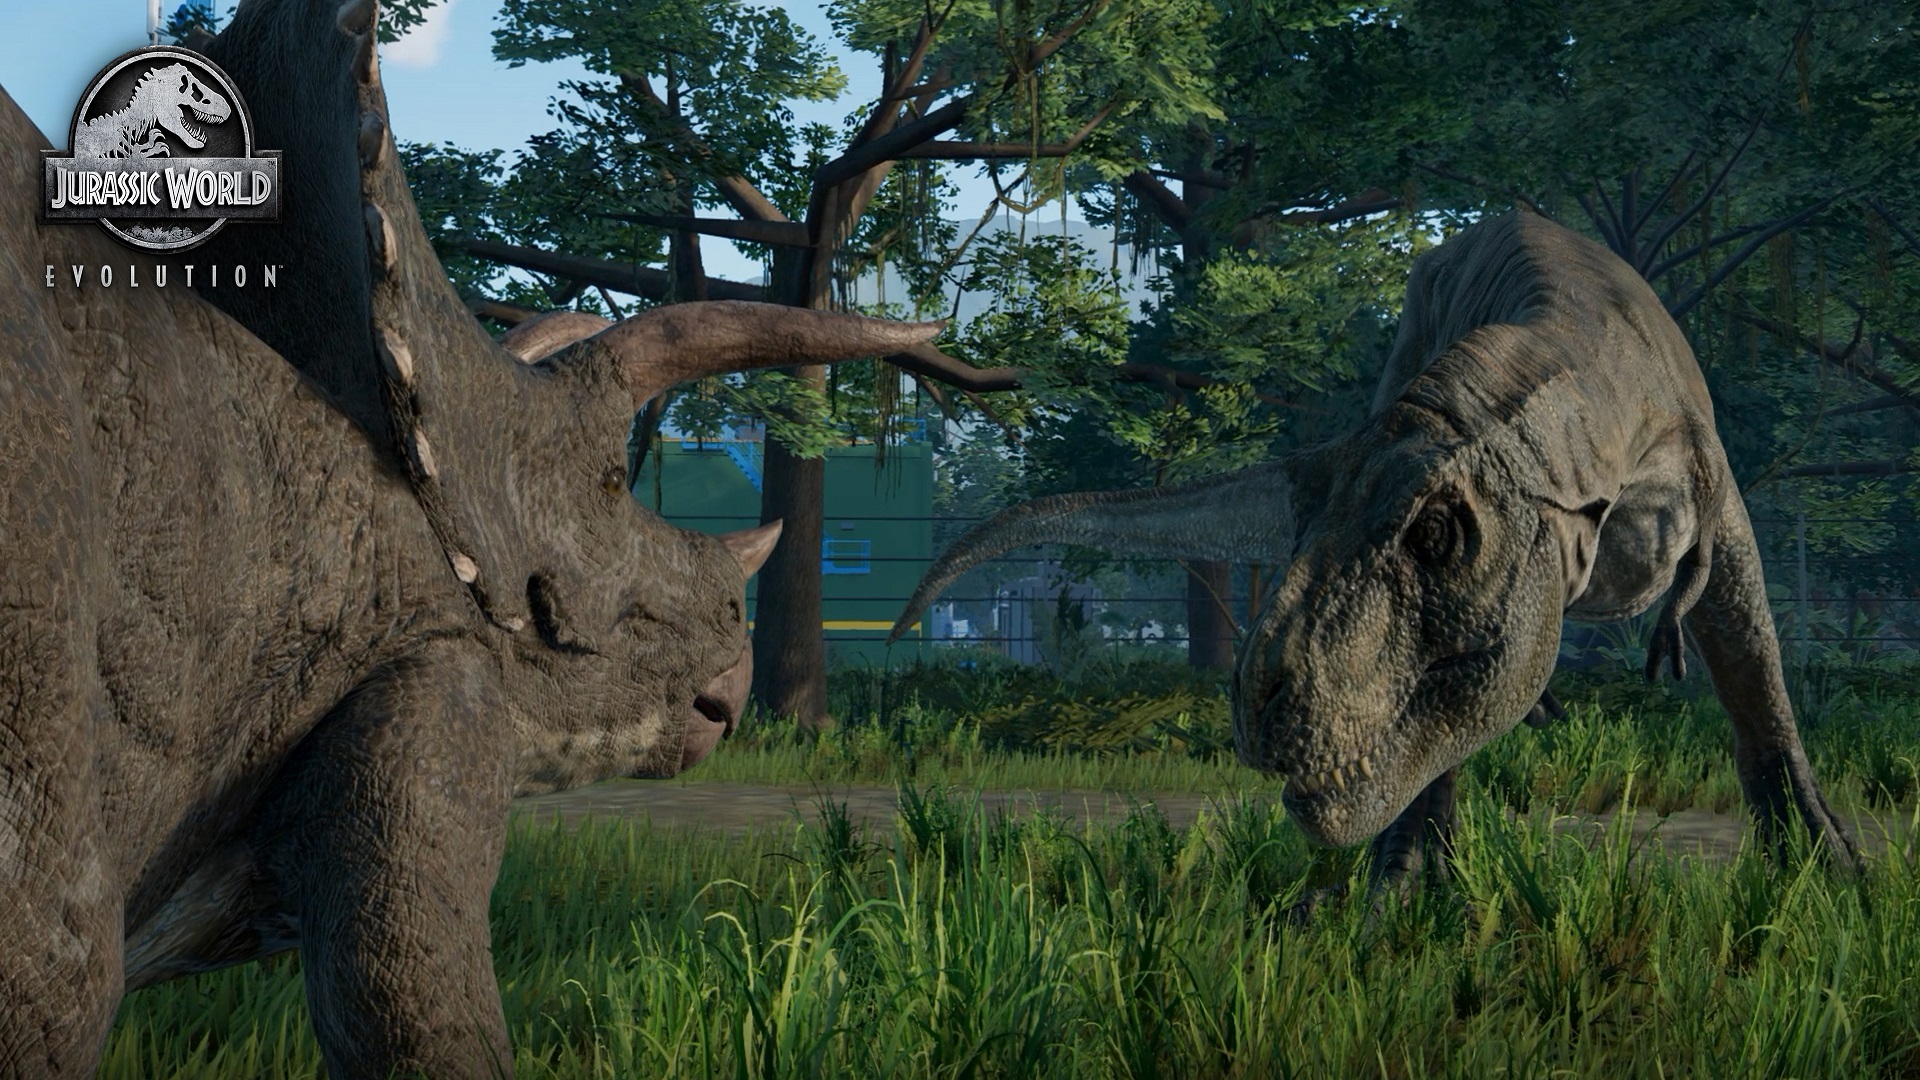 Download Jurassic World Evolution HD Wallpapers - Read games review, play online games ...